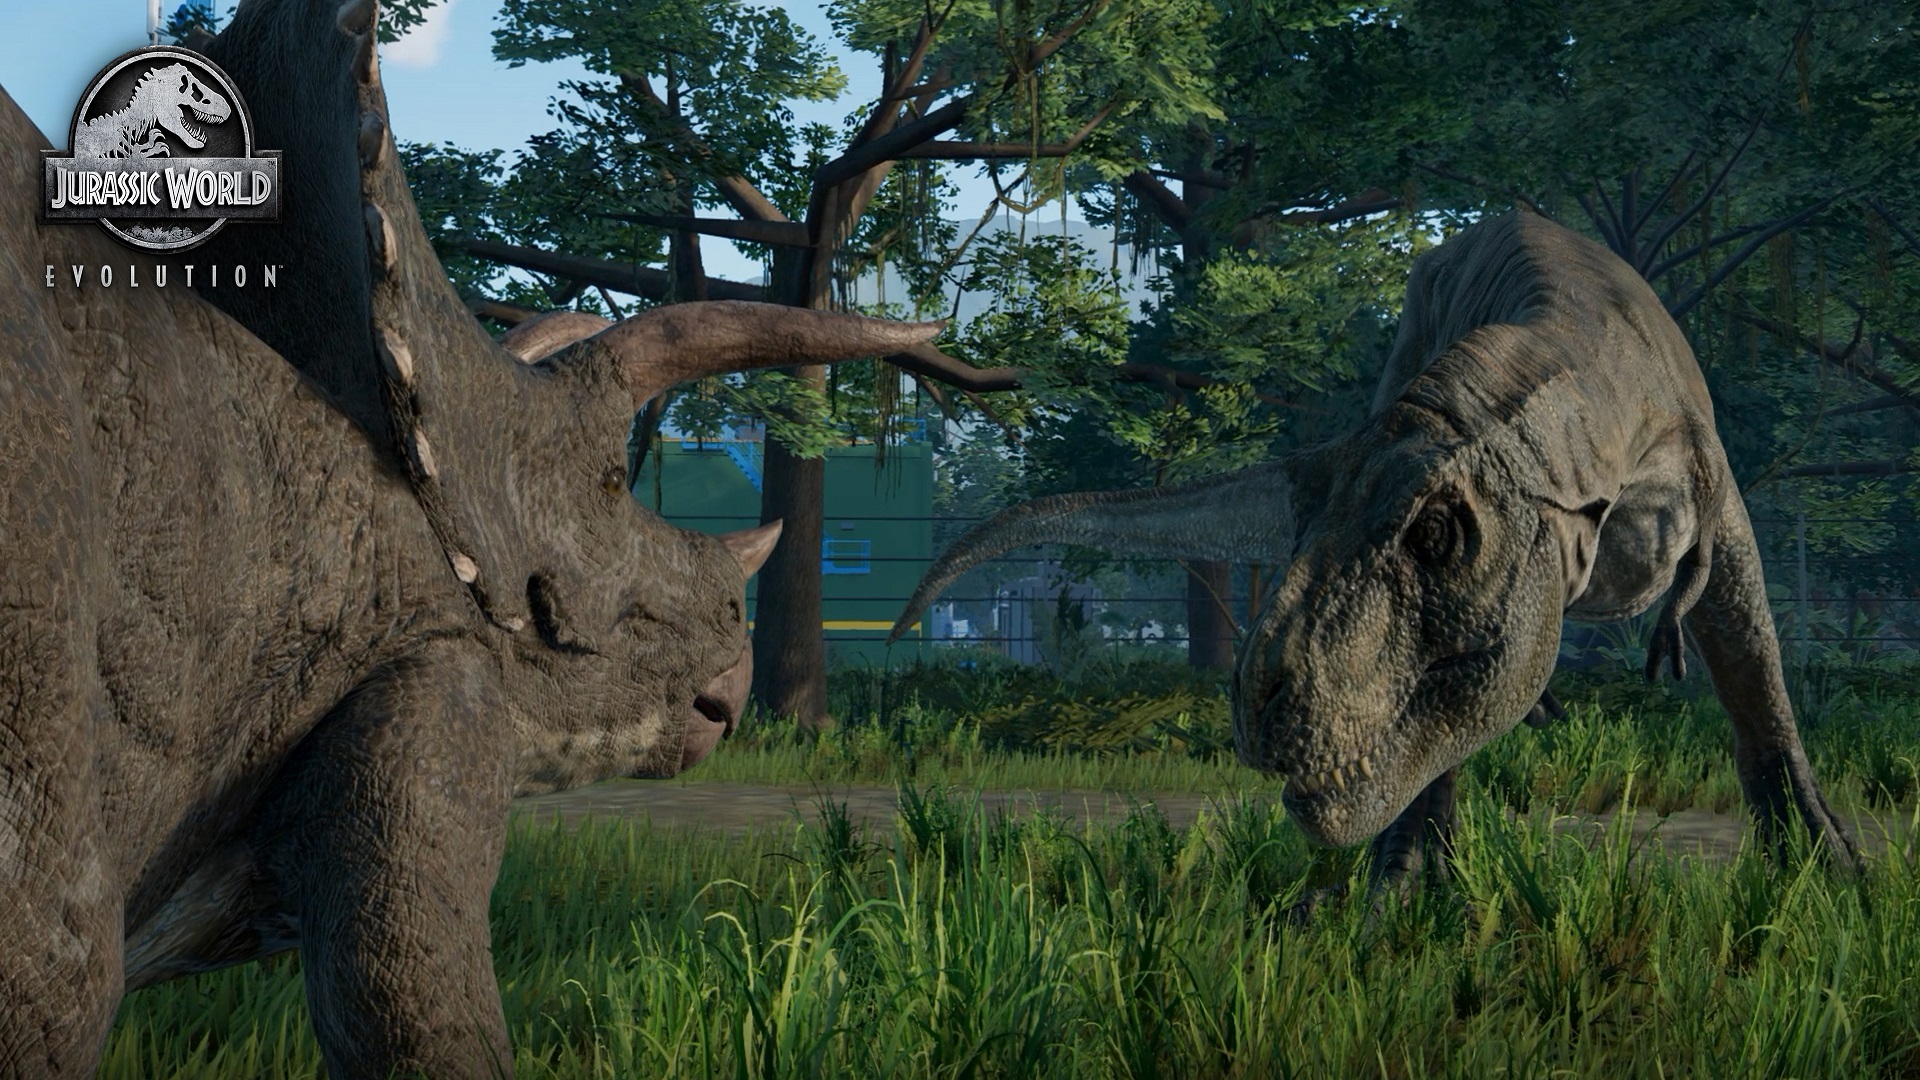 Download Jurassic World Evolution HD Wallpapers - Read games review, play online games ...